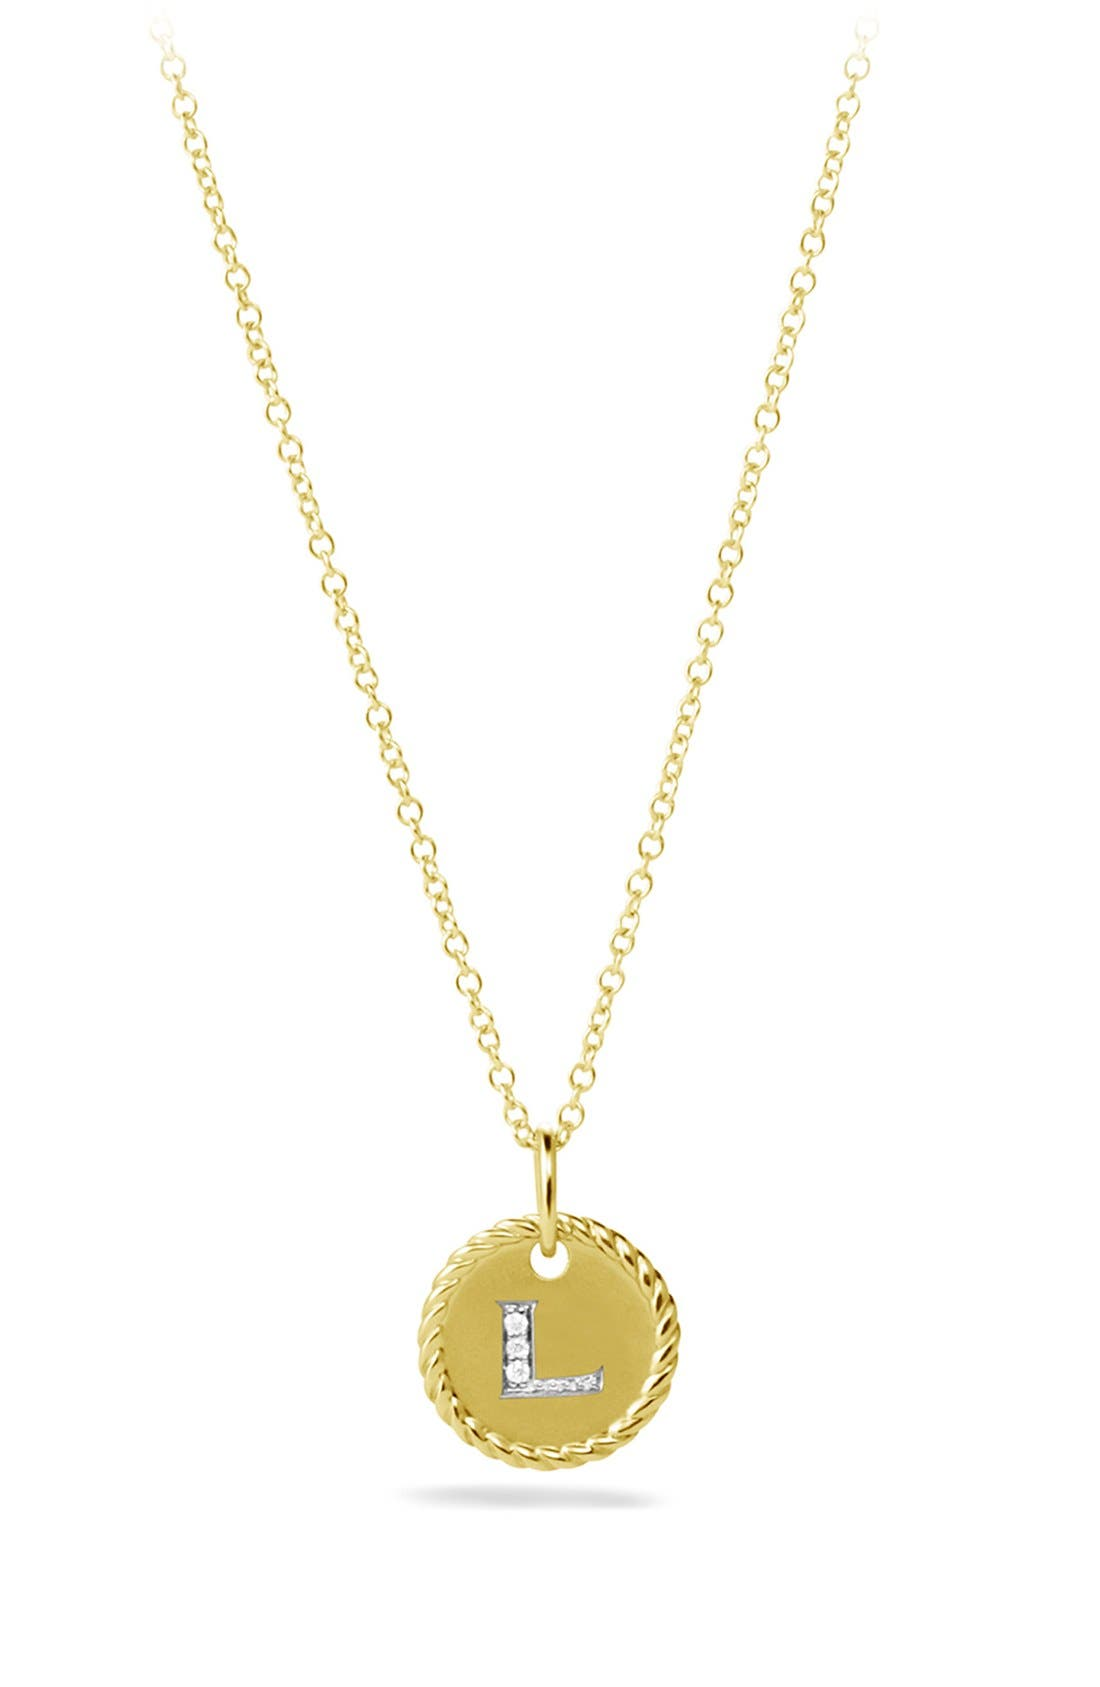 Womens Necklaces Nordstrom